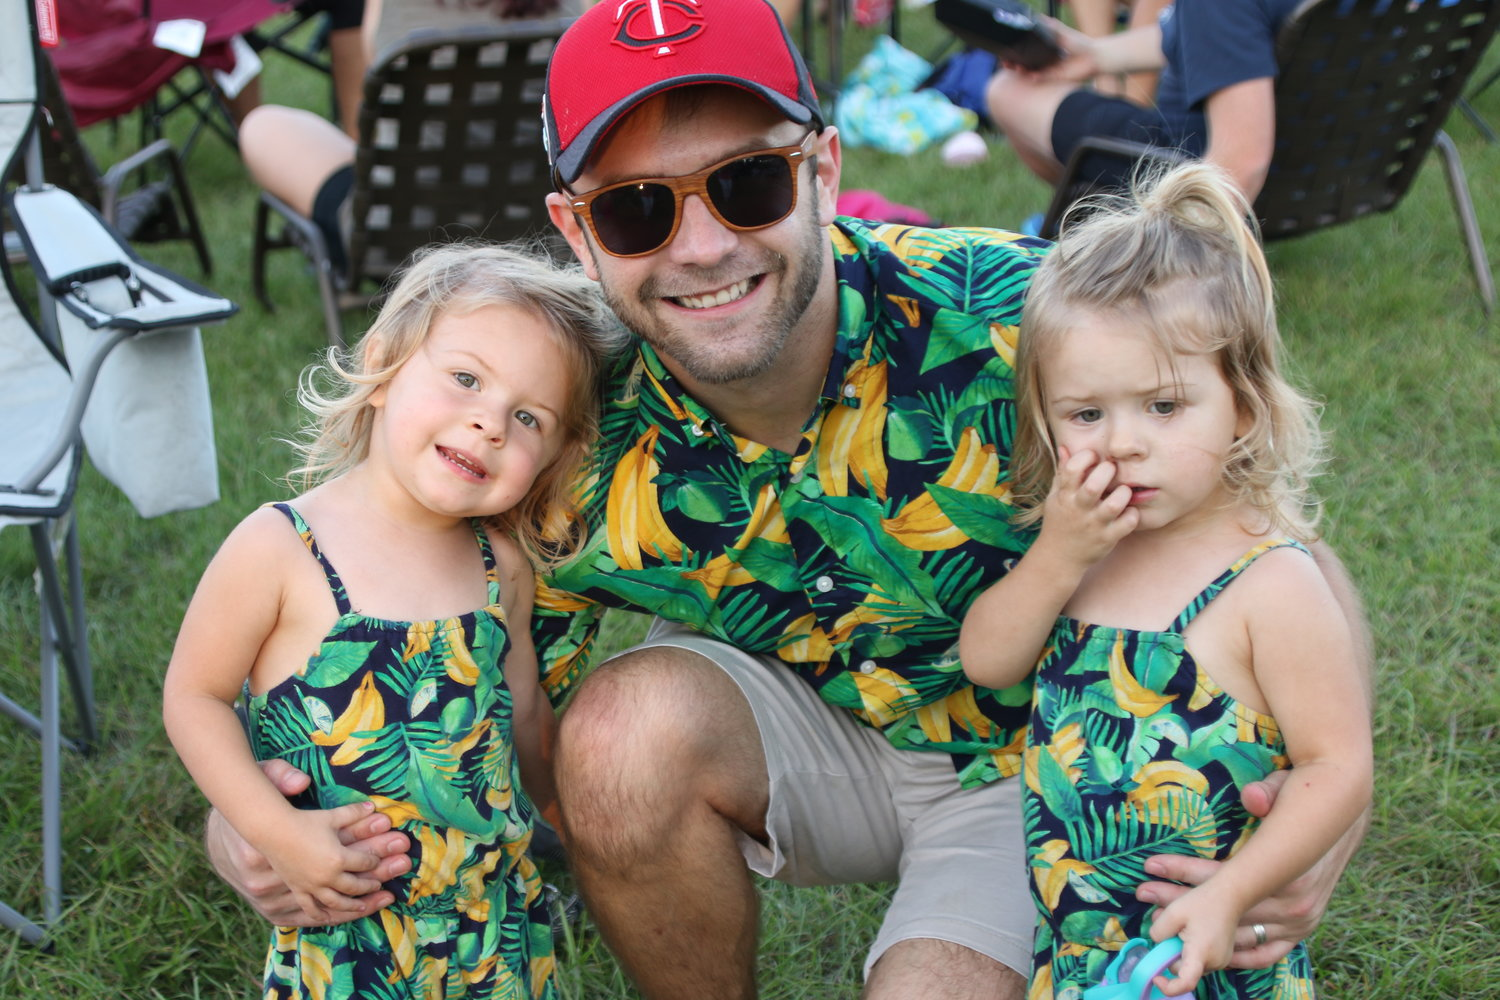 Identical twins Calla and Rynn attended Food Truck Friday with their father, Bradley Chard (center).